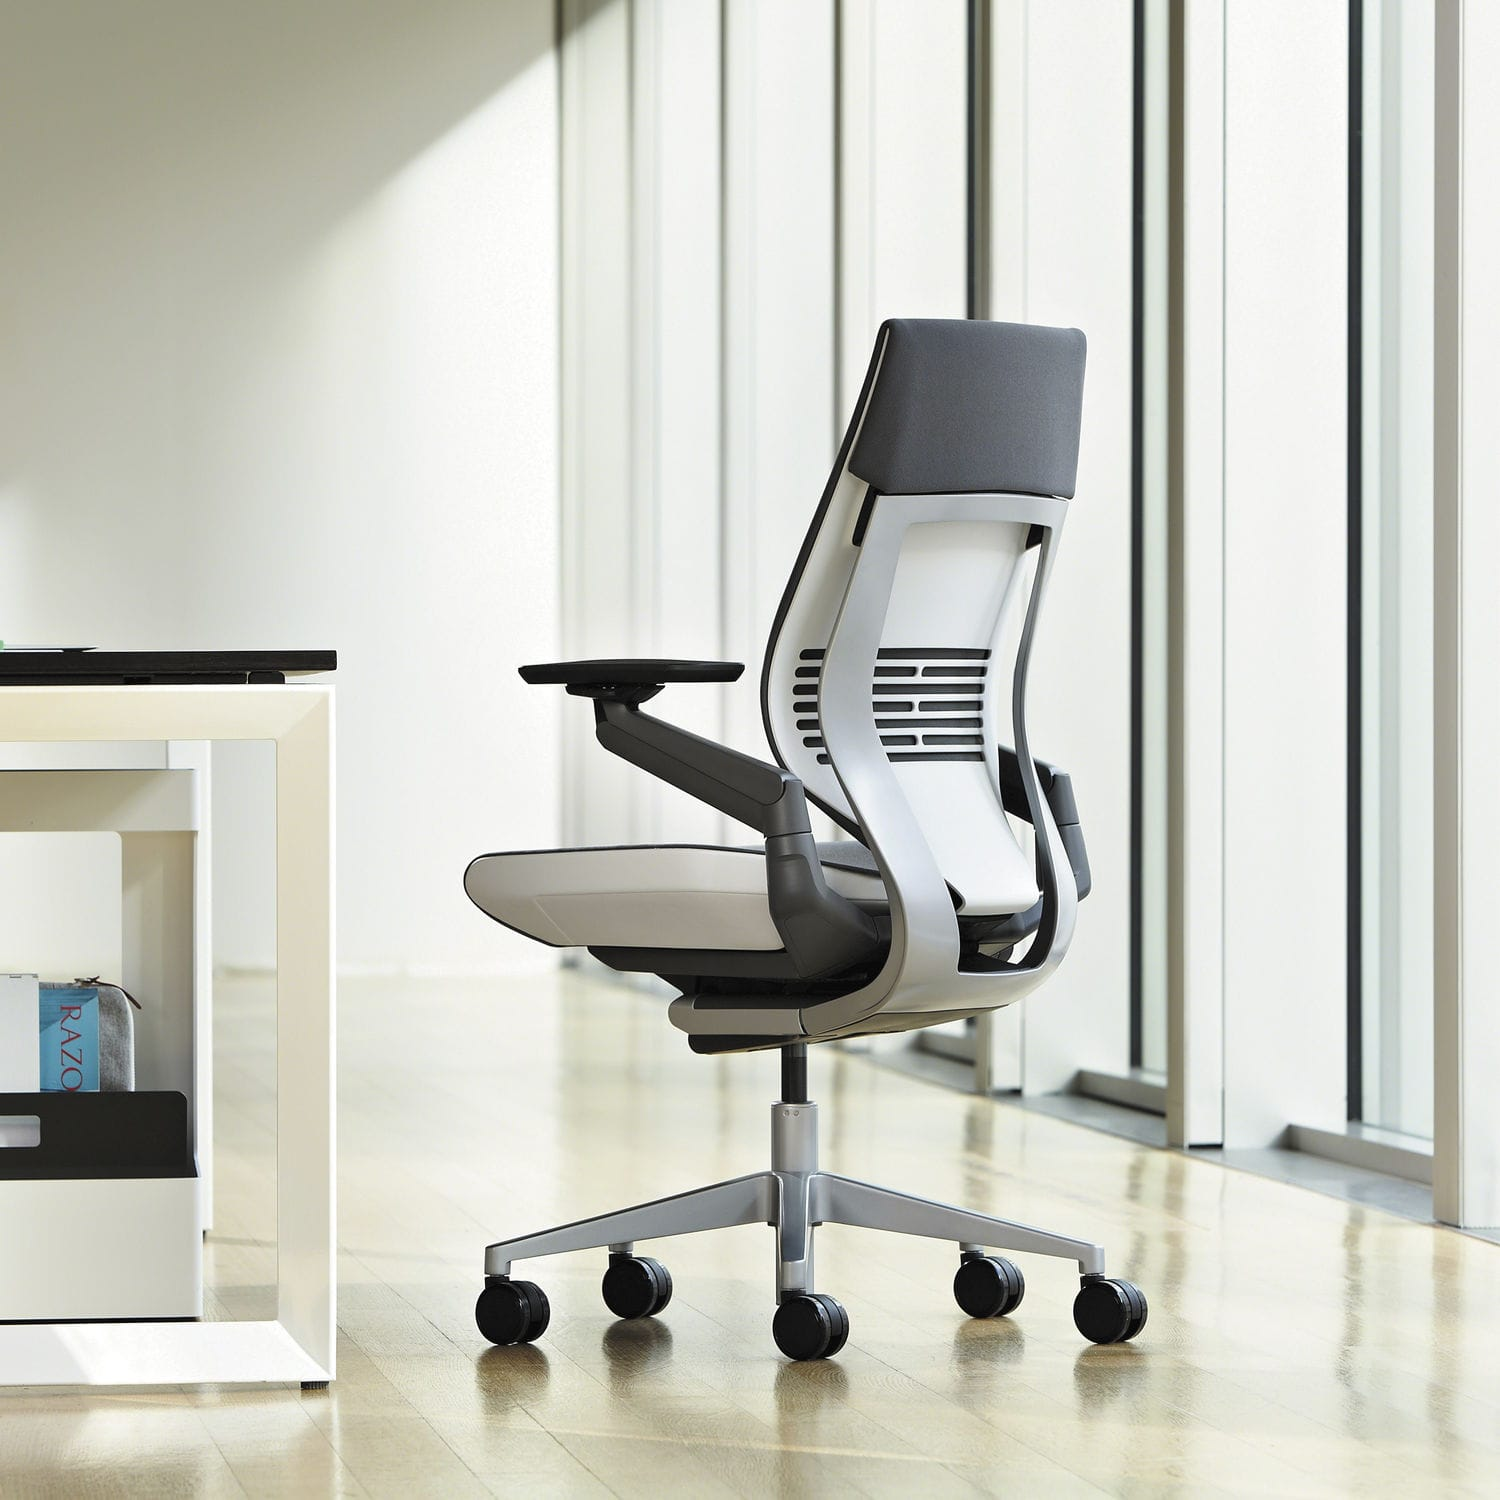 Fauteuils Steelcase Contemporary Office Armchair Fabric Leather Steel Gesture Steelcase